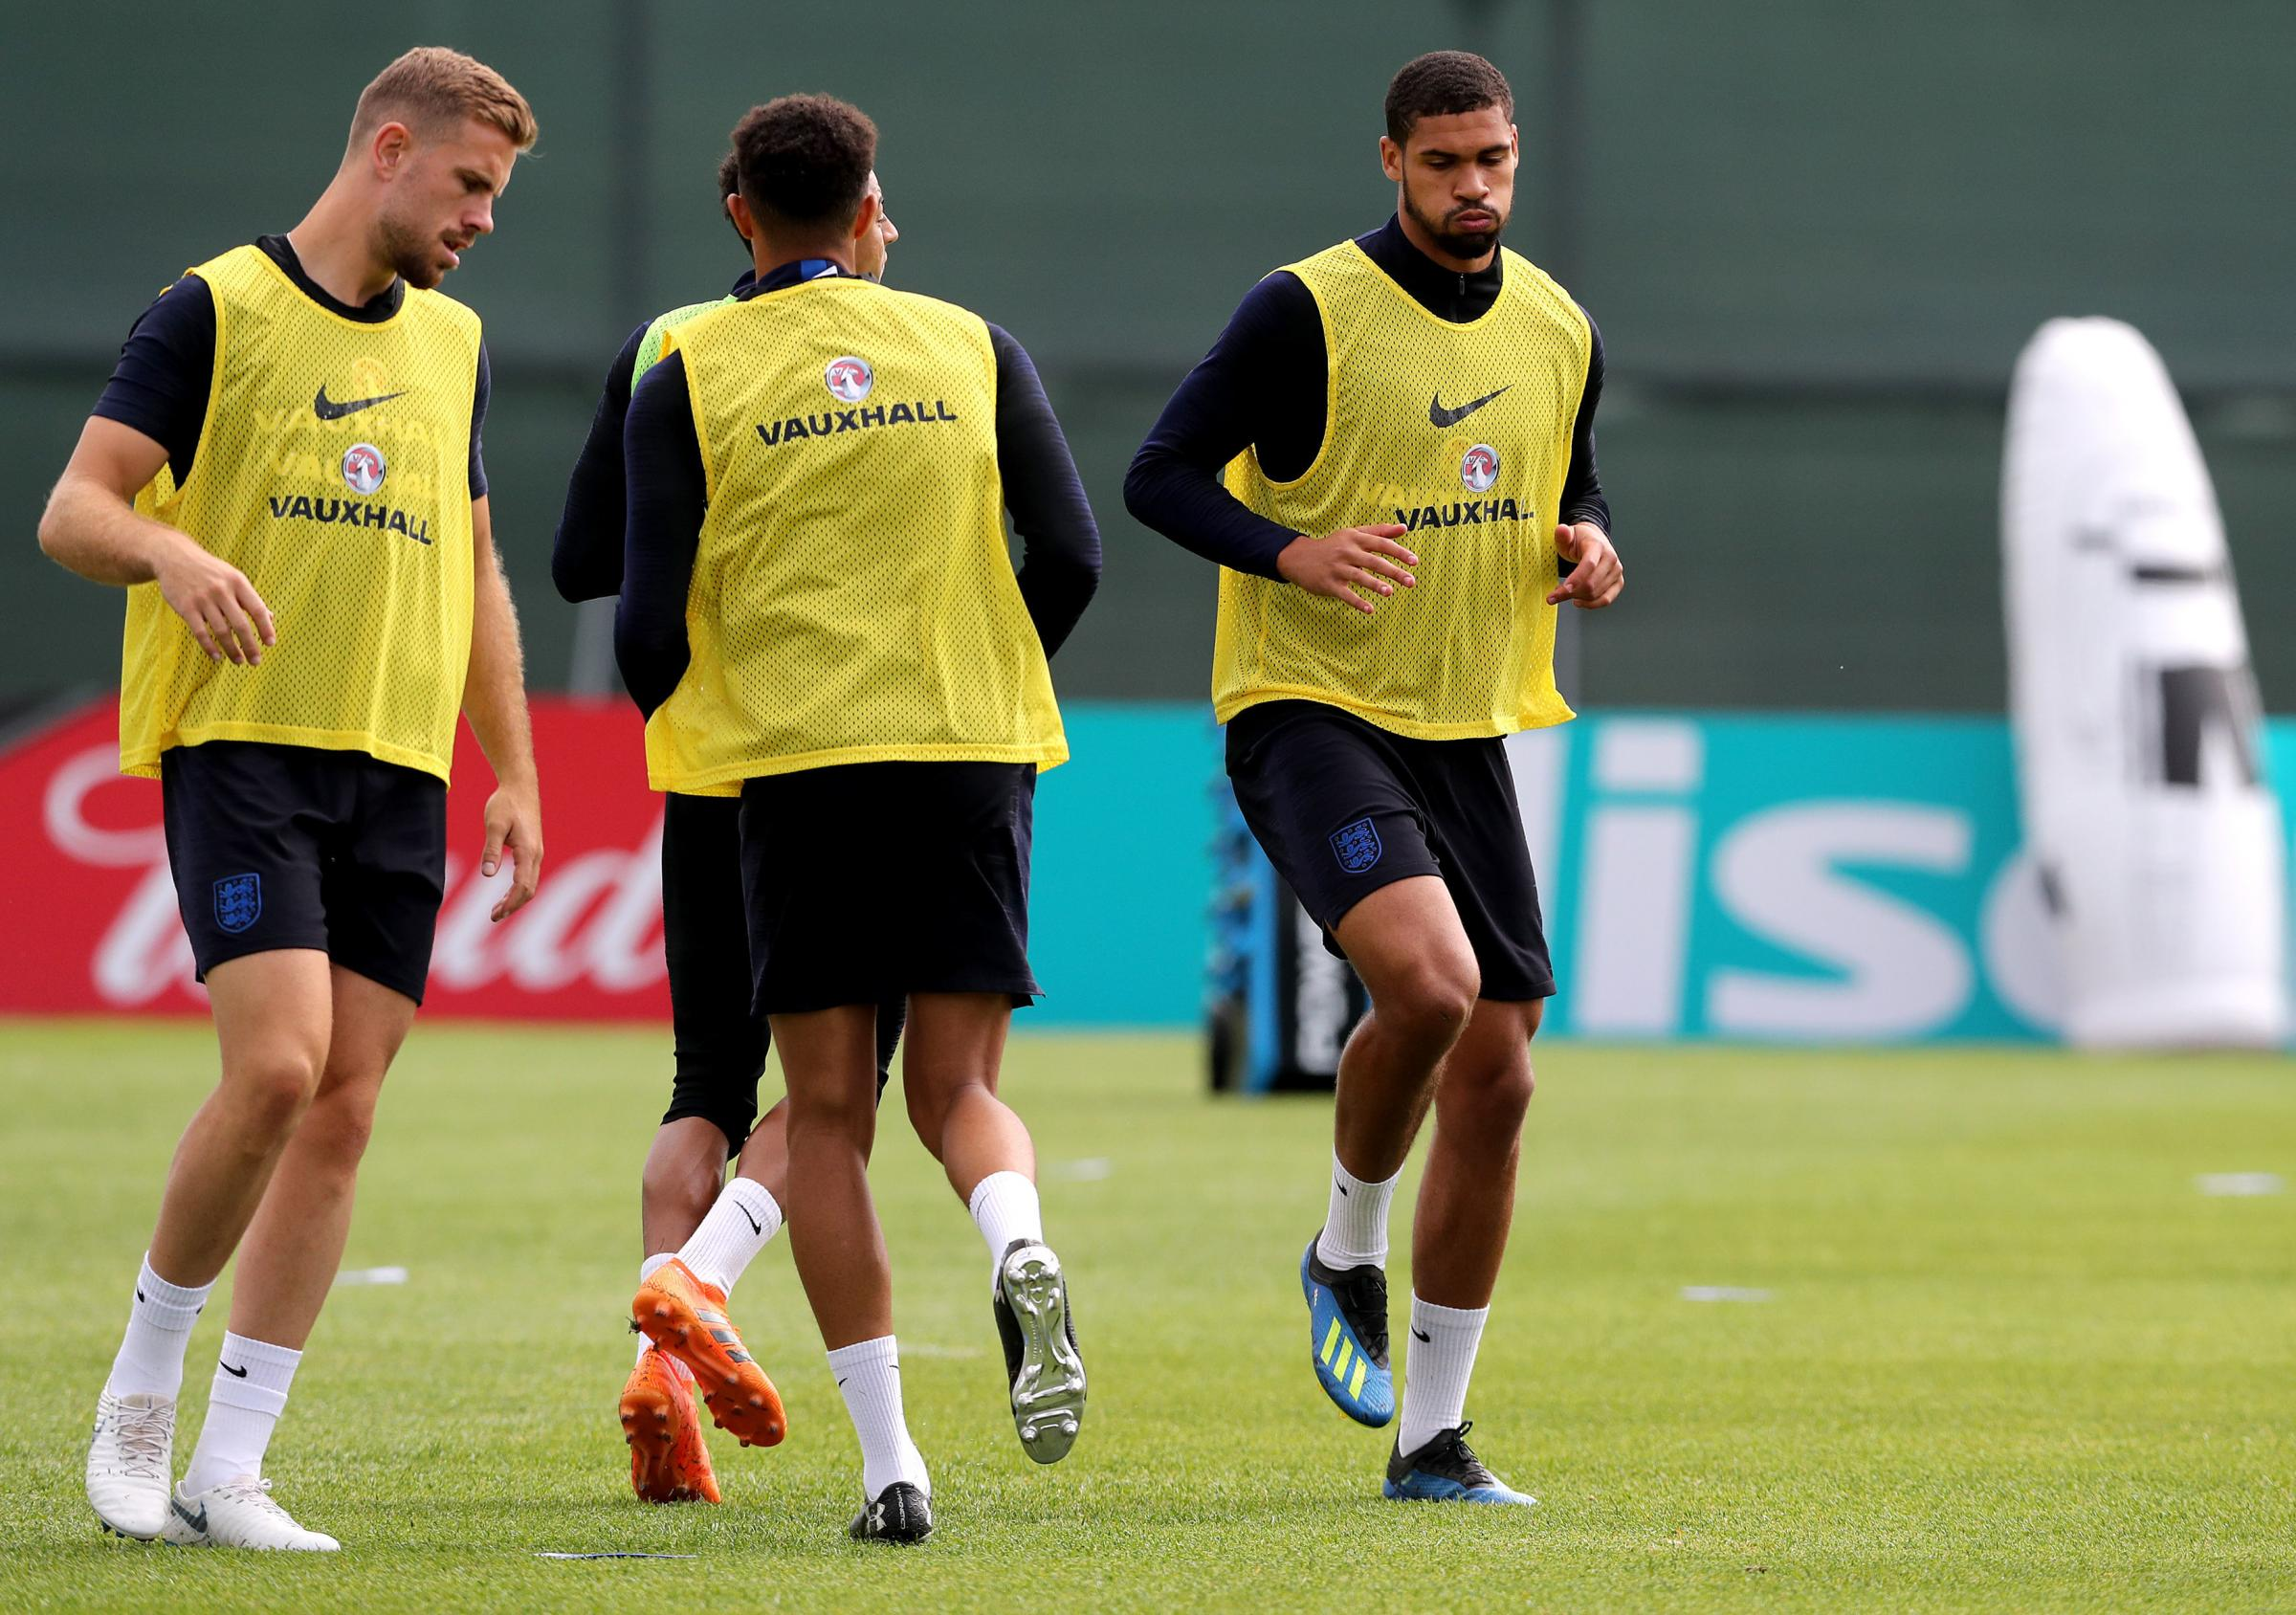 It would be no surprise to see Ruben Loftus-Cheek (right) drafted into the starting XI after showing from bench against Tunisia